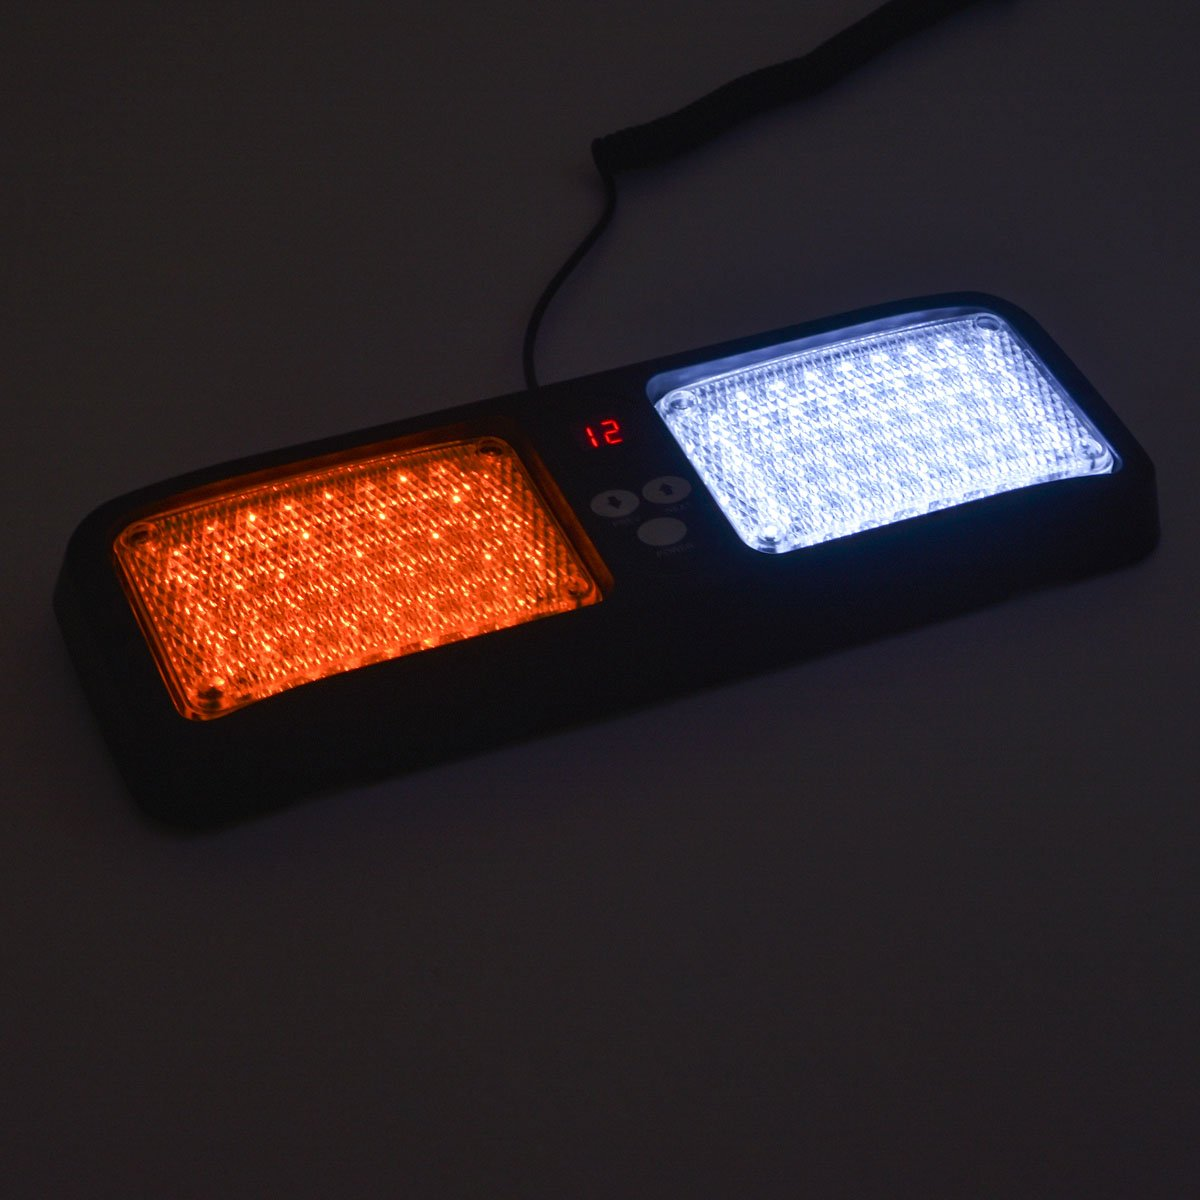 Red HY 86 LED Sunshield Strobe Light Super Bright Flashing Emergency Warning Lights for Visor Maximum Visibility with 12 Flashing Patterns Fits Commercial Truck Boat Car